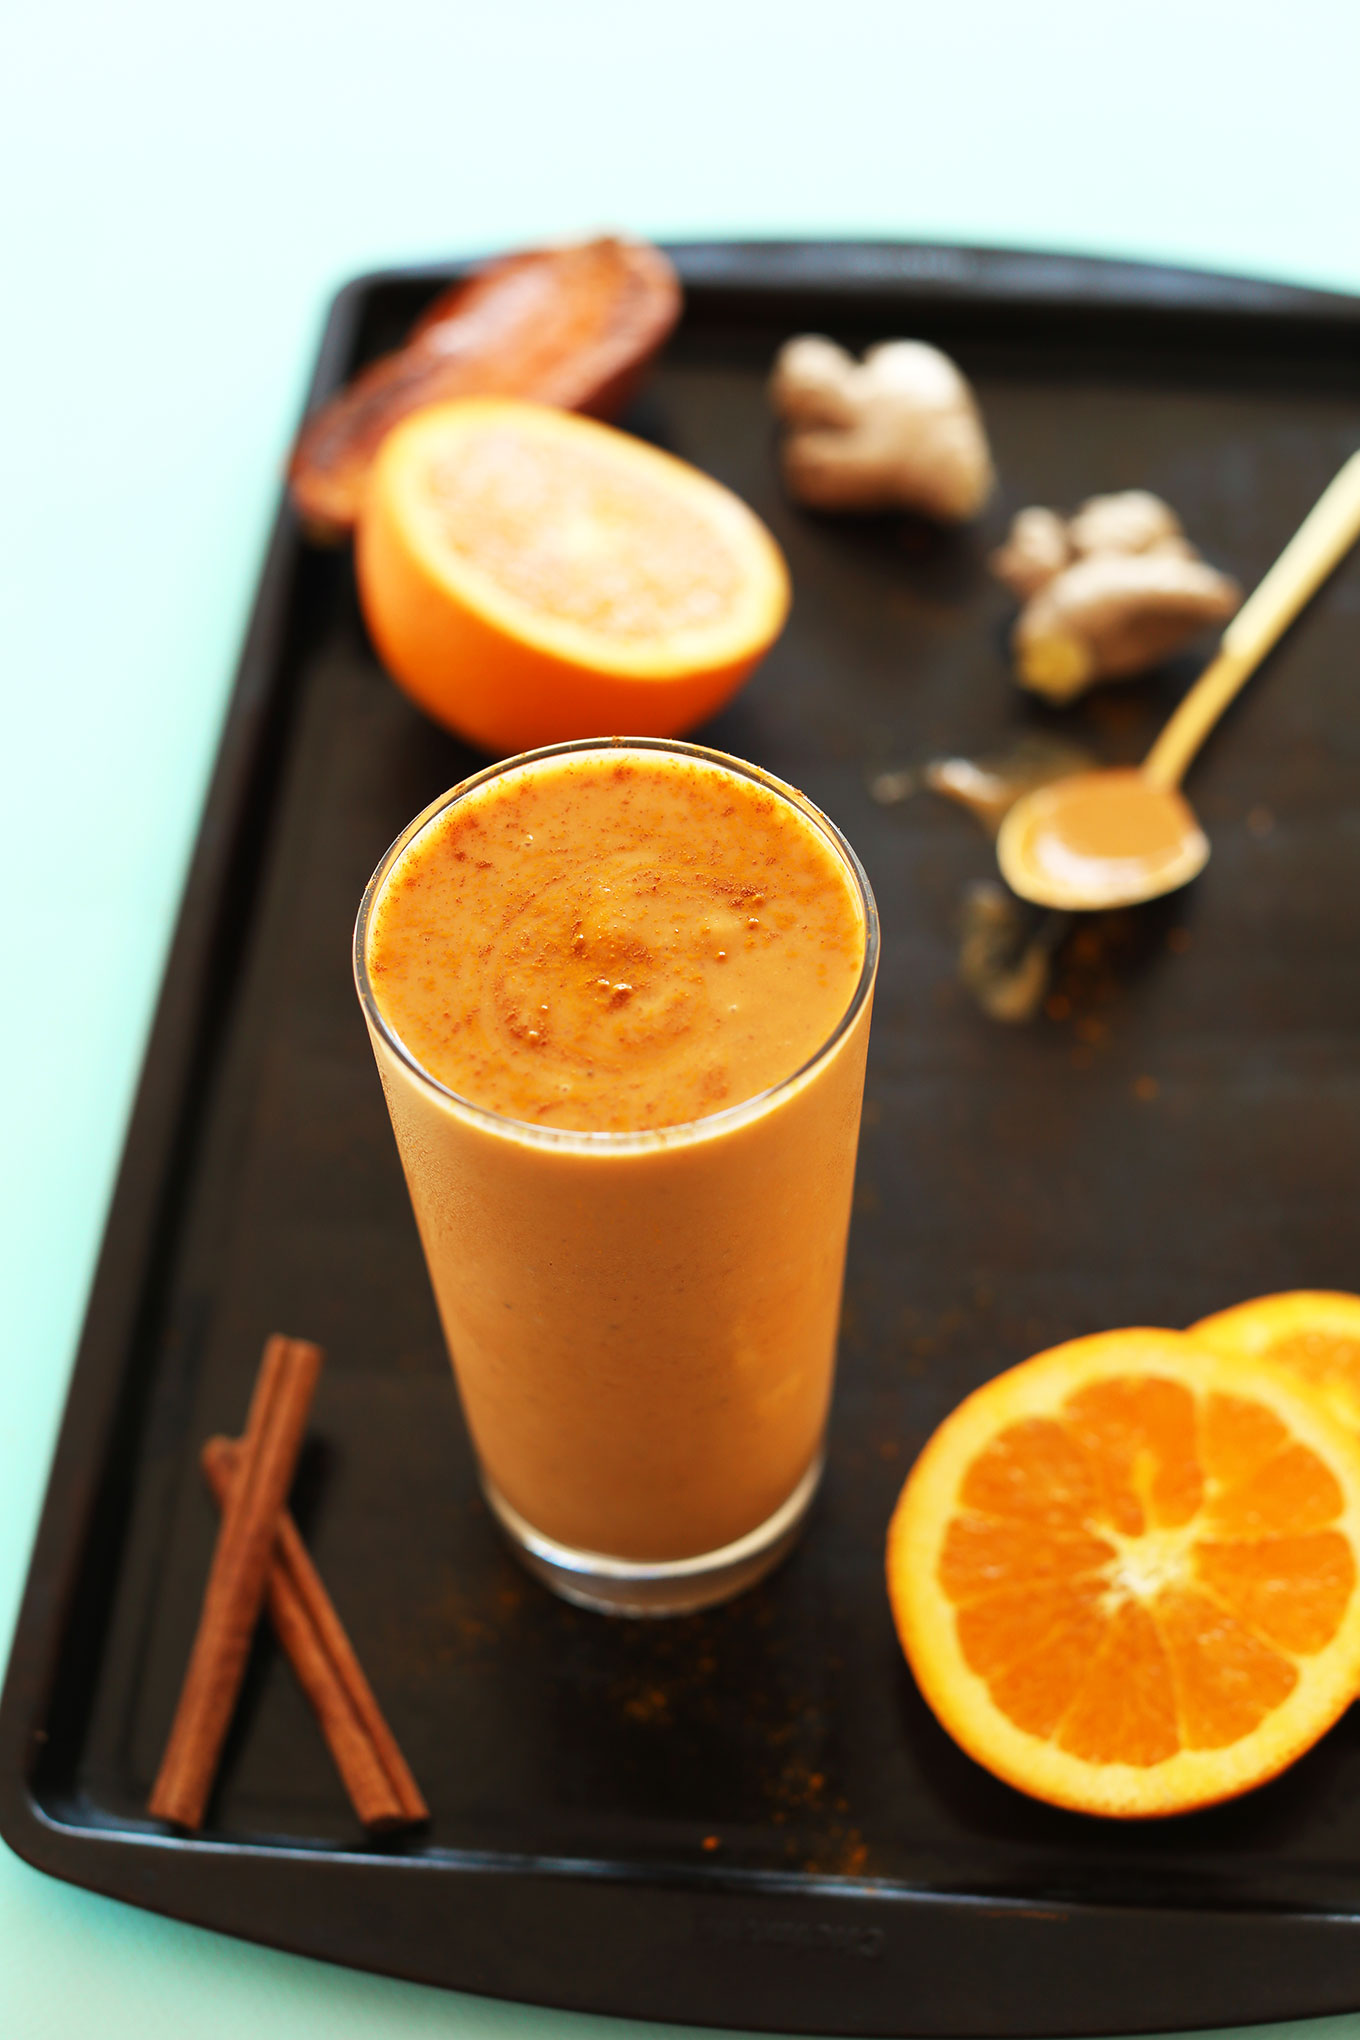 Glass of our Creamy vegan Sweet Potato Smoothie with oranges, cinnamon, and ginger